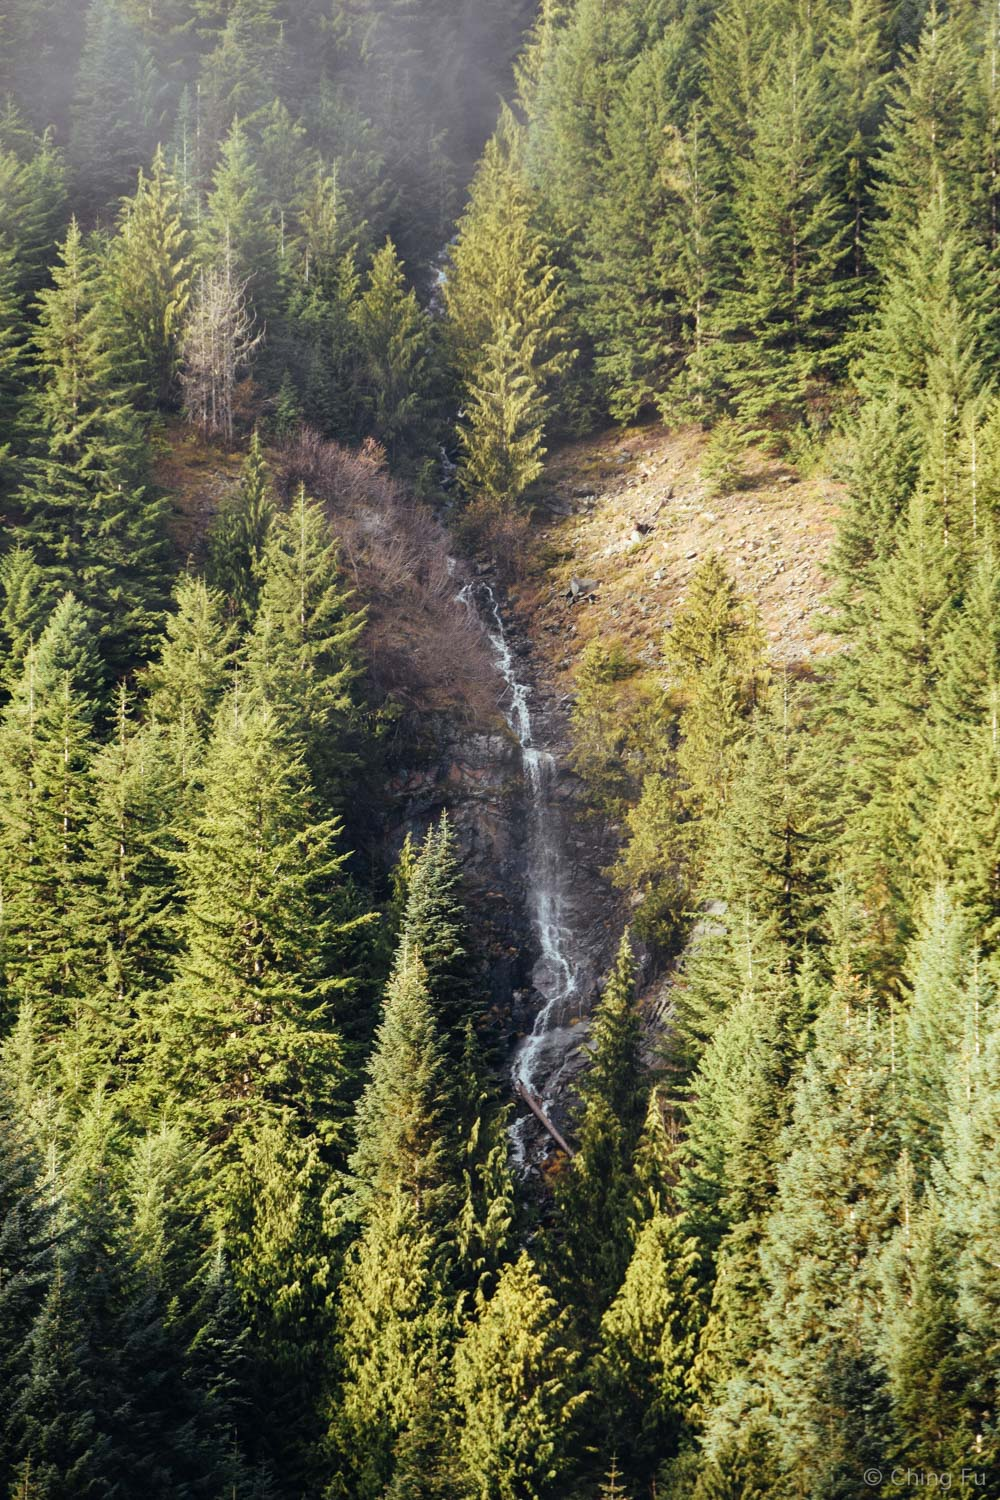 Another view from the resort. This waterfall is right underneath a ski run.